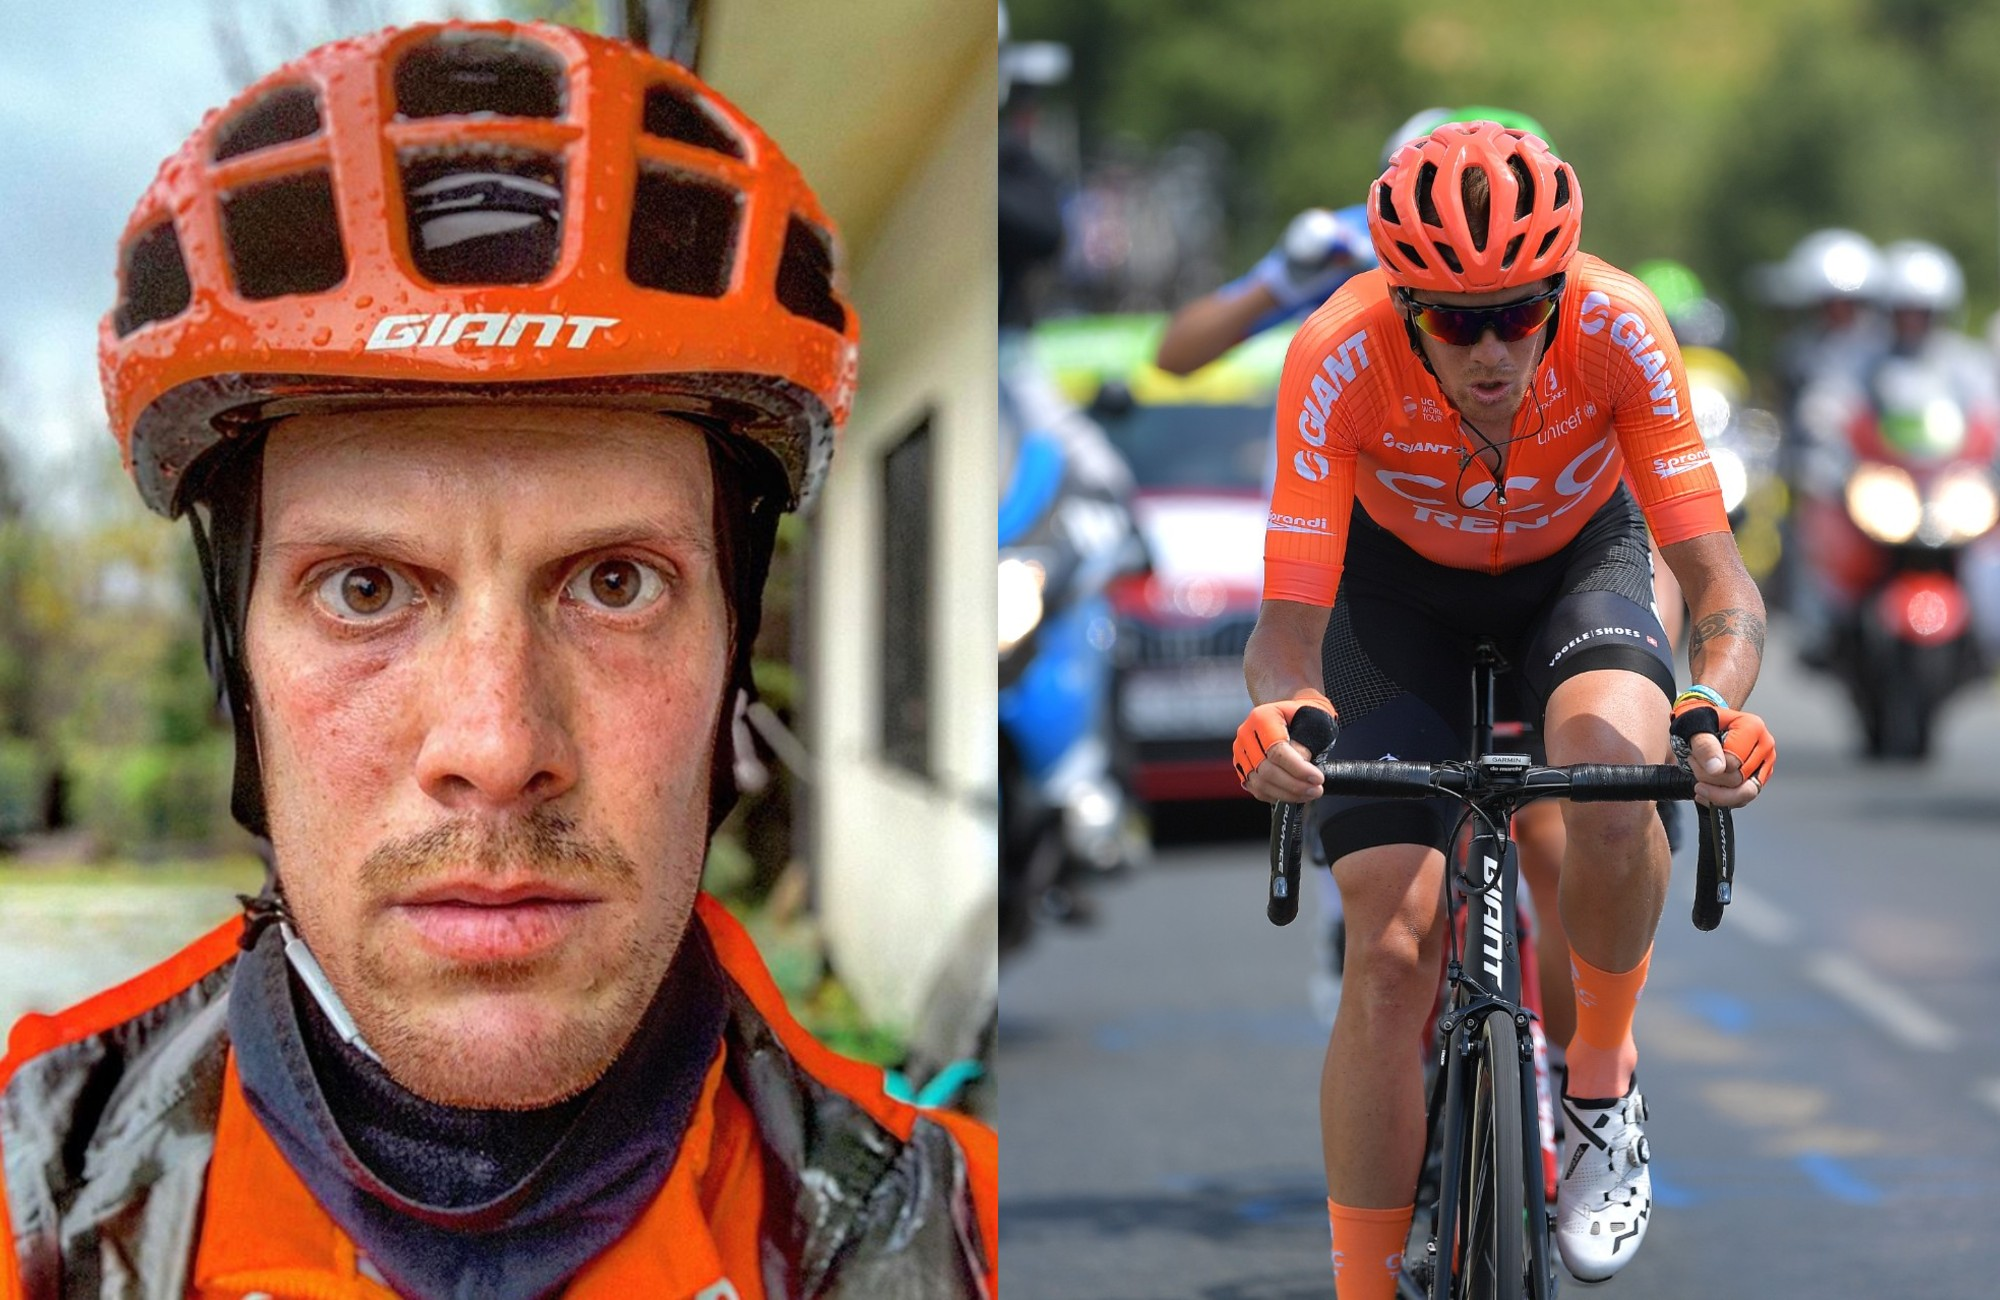 Alessandro De Marchi makes emotional plea to dangerous drivers after near-miss during traning ride